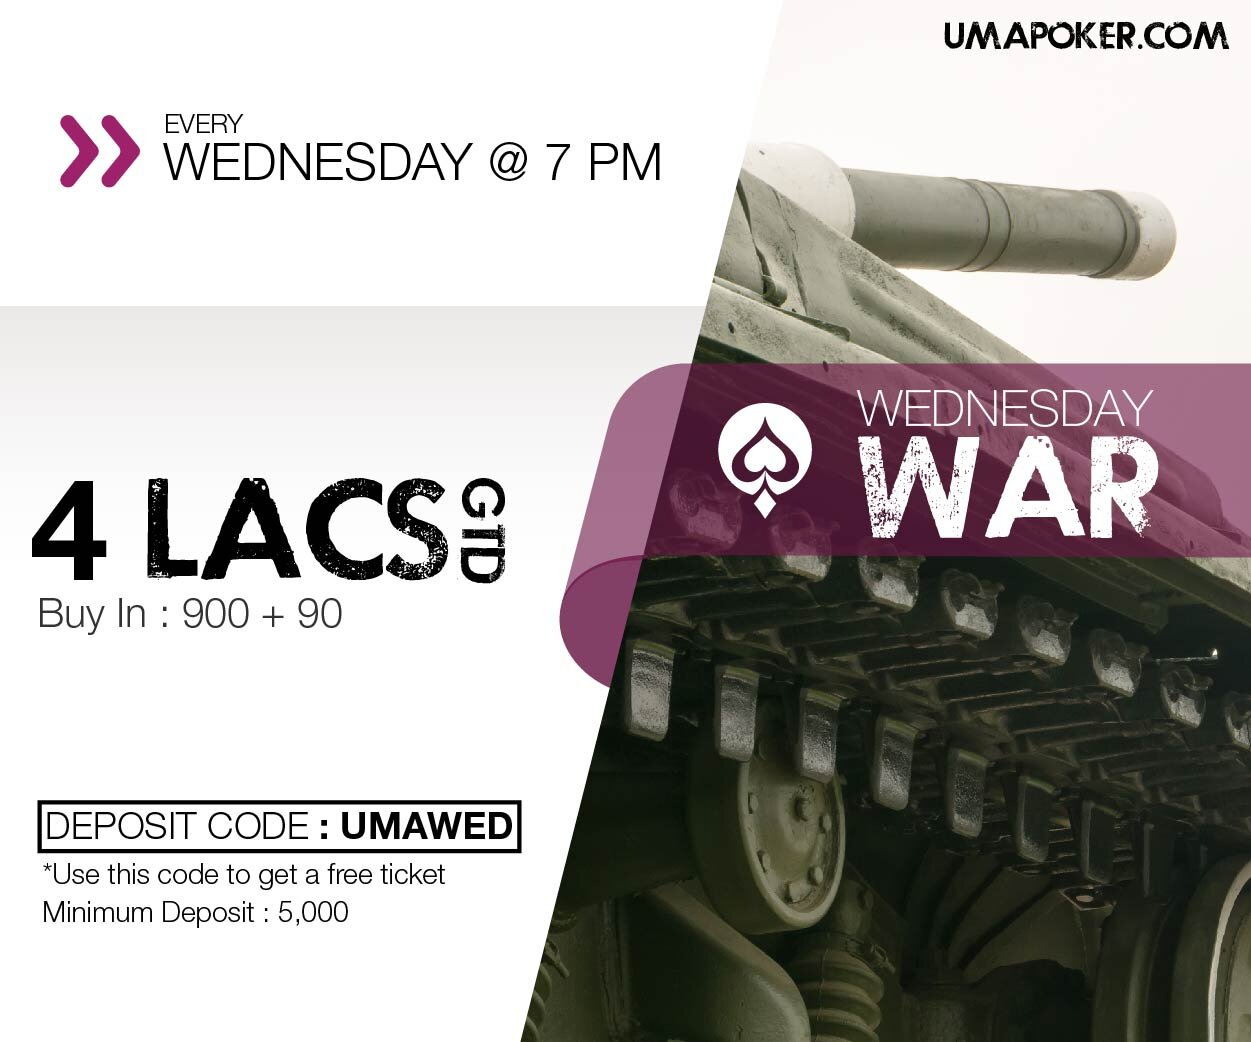 UMA Poker Wednesday war